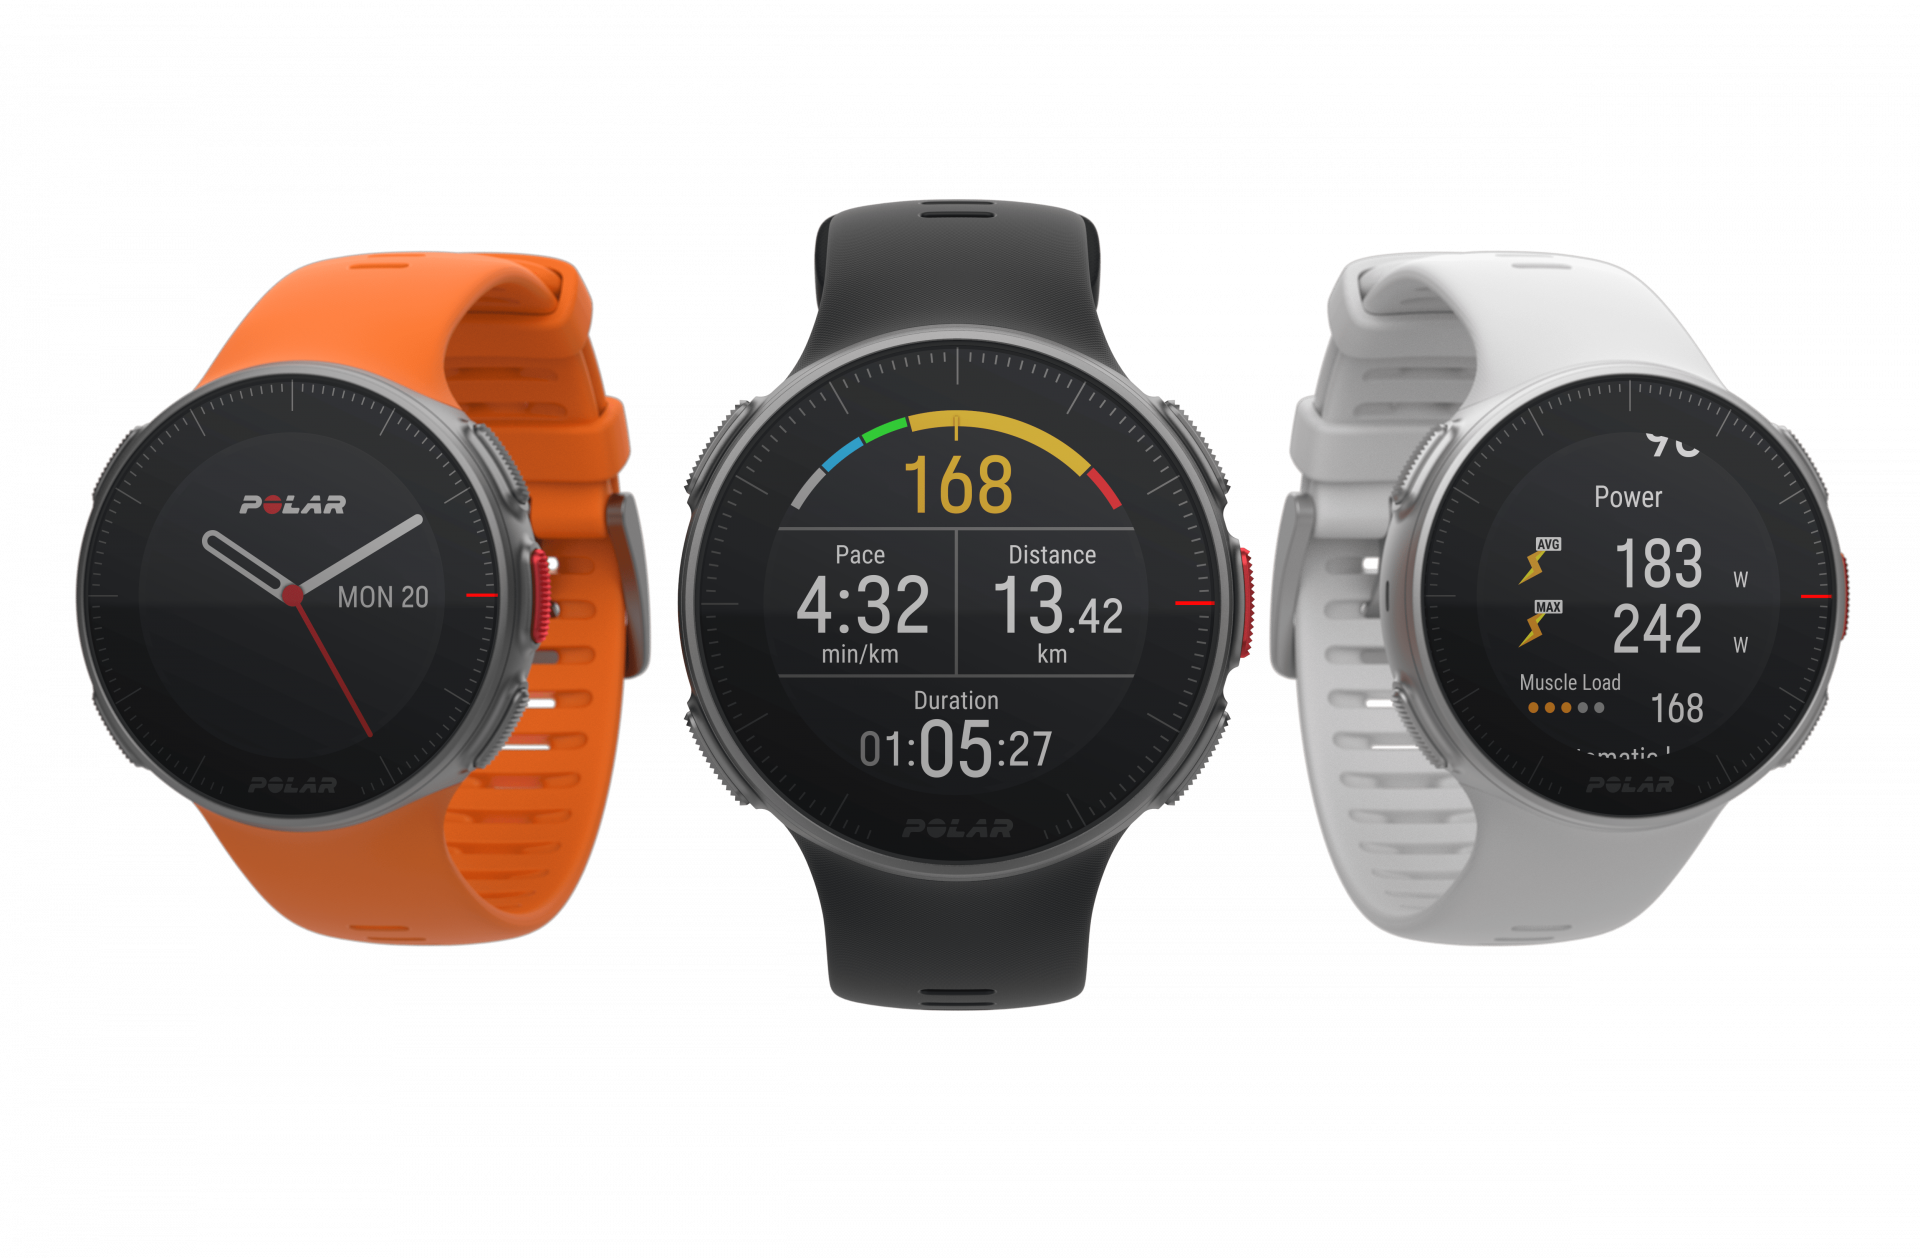 The Ultimate Guide to Polar GPS Running Watches